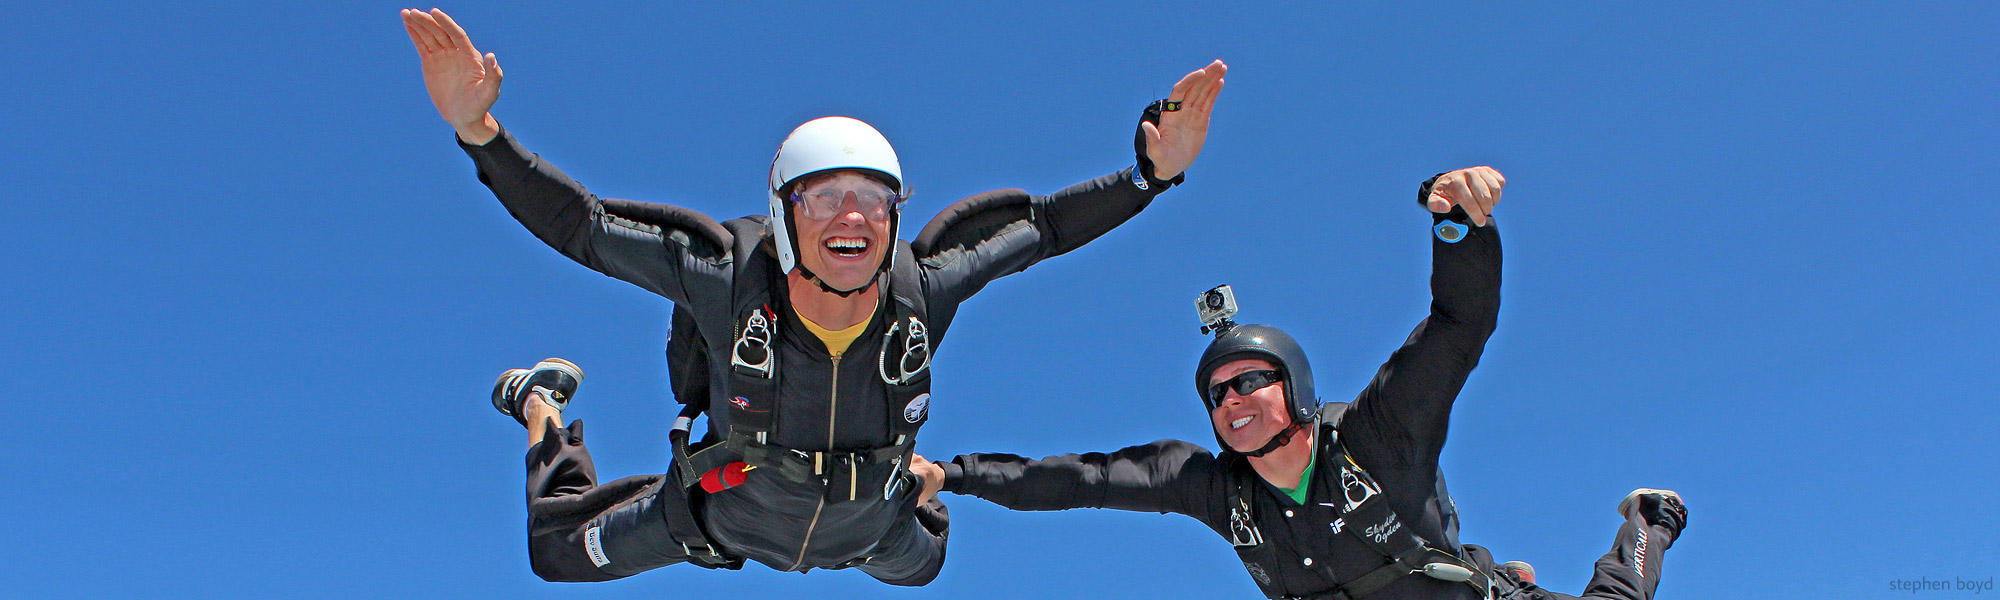 Skydiver Training Program at Spaceland